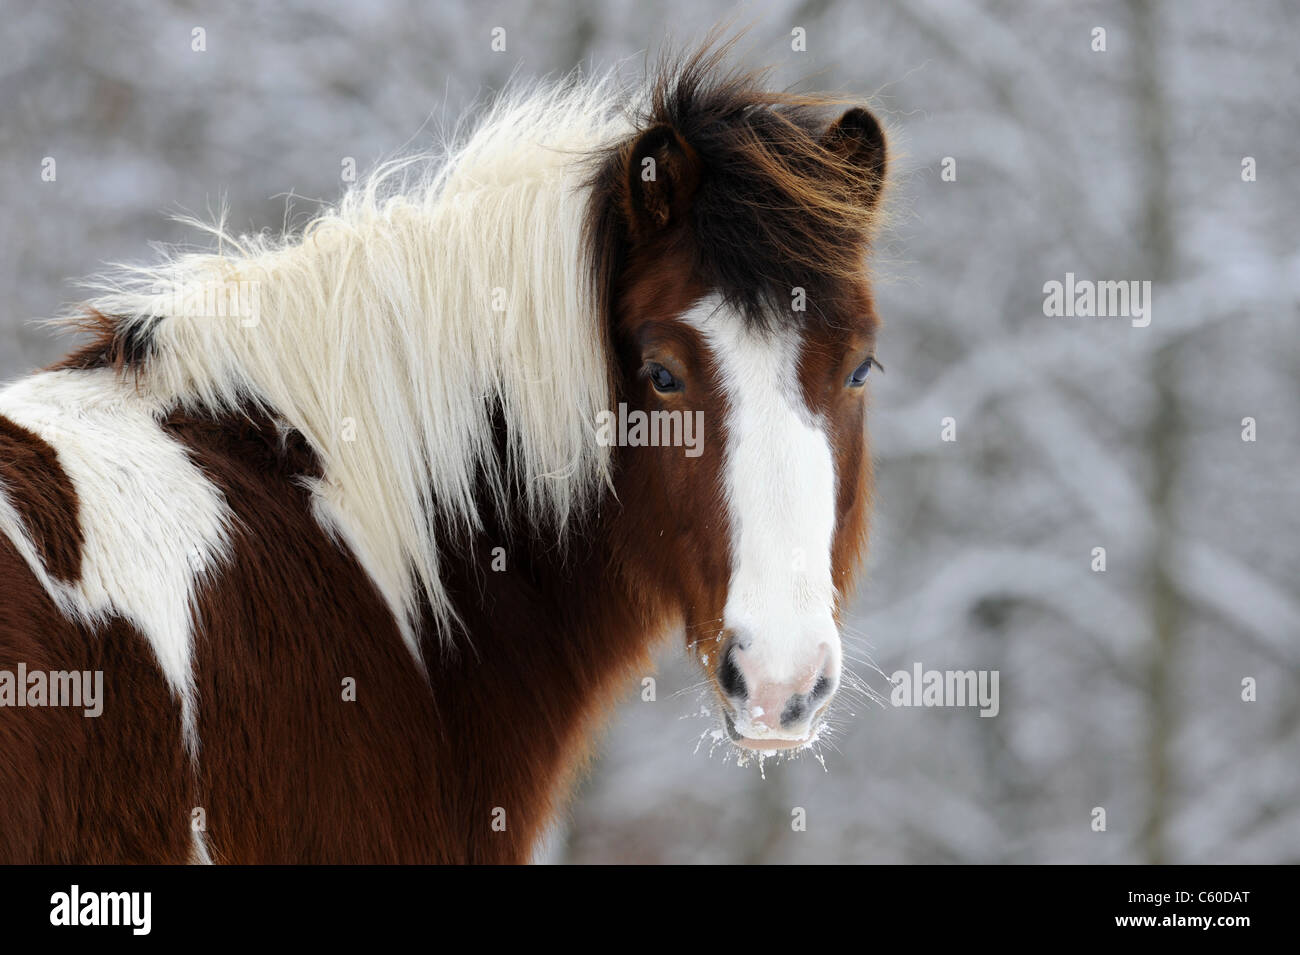 Icelandic Horse (Equus ferus caballus). Portrait of a brown and white pinto mare in winter. - Stock Image